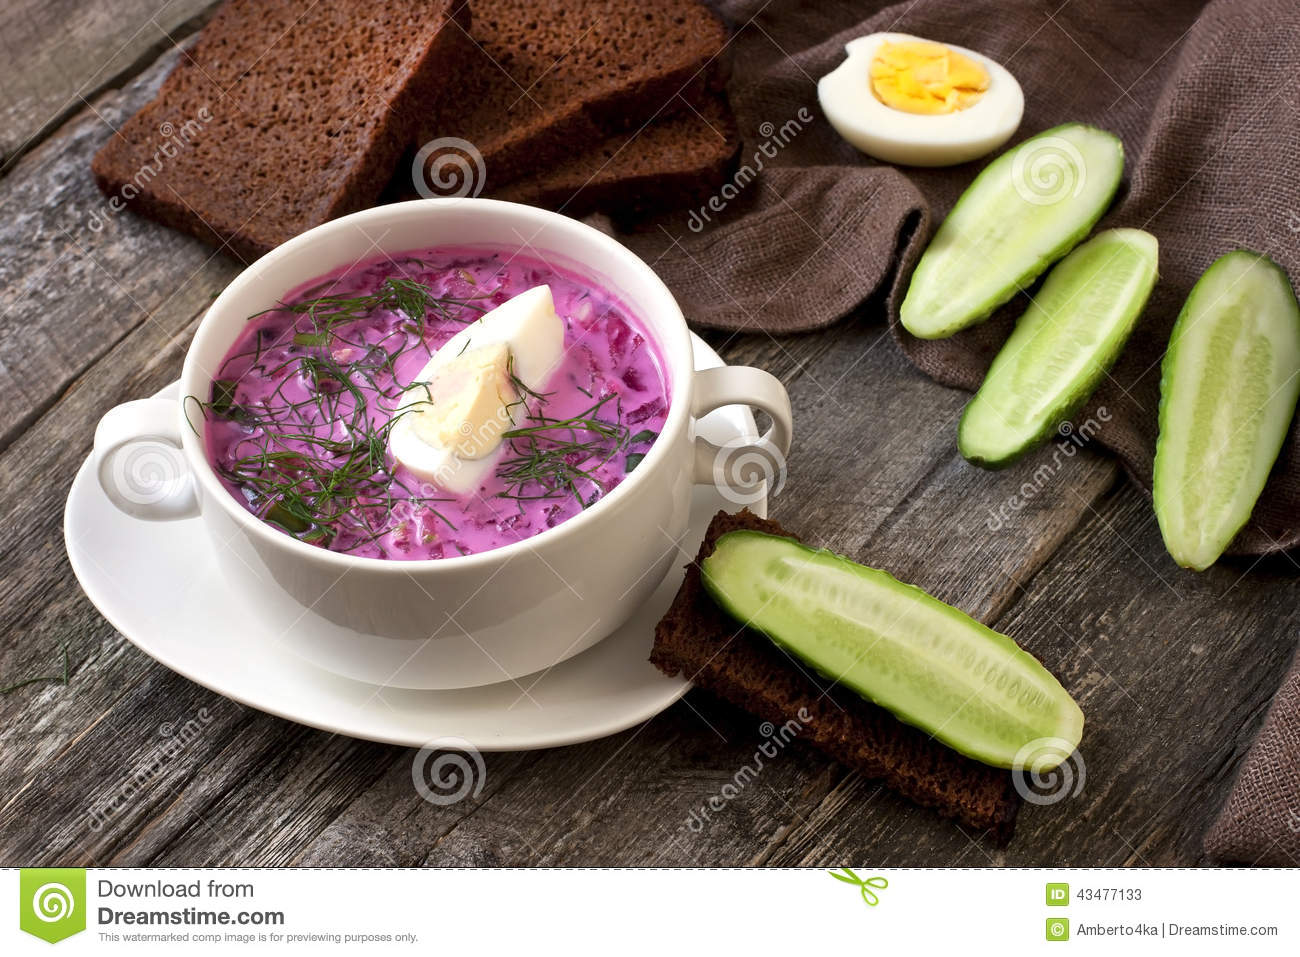 Traditional  Russian cold  soup made of beets, cucumbers and herbs with egg and sour cream